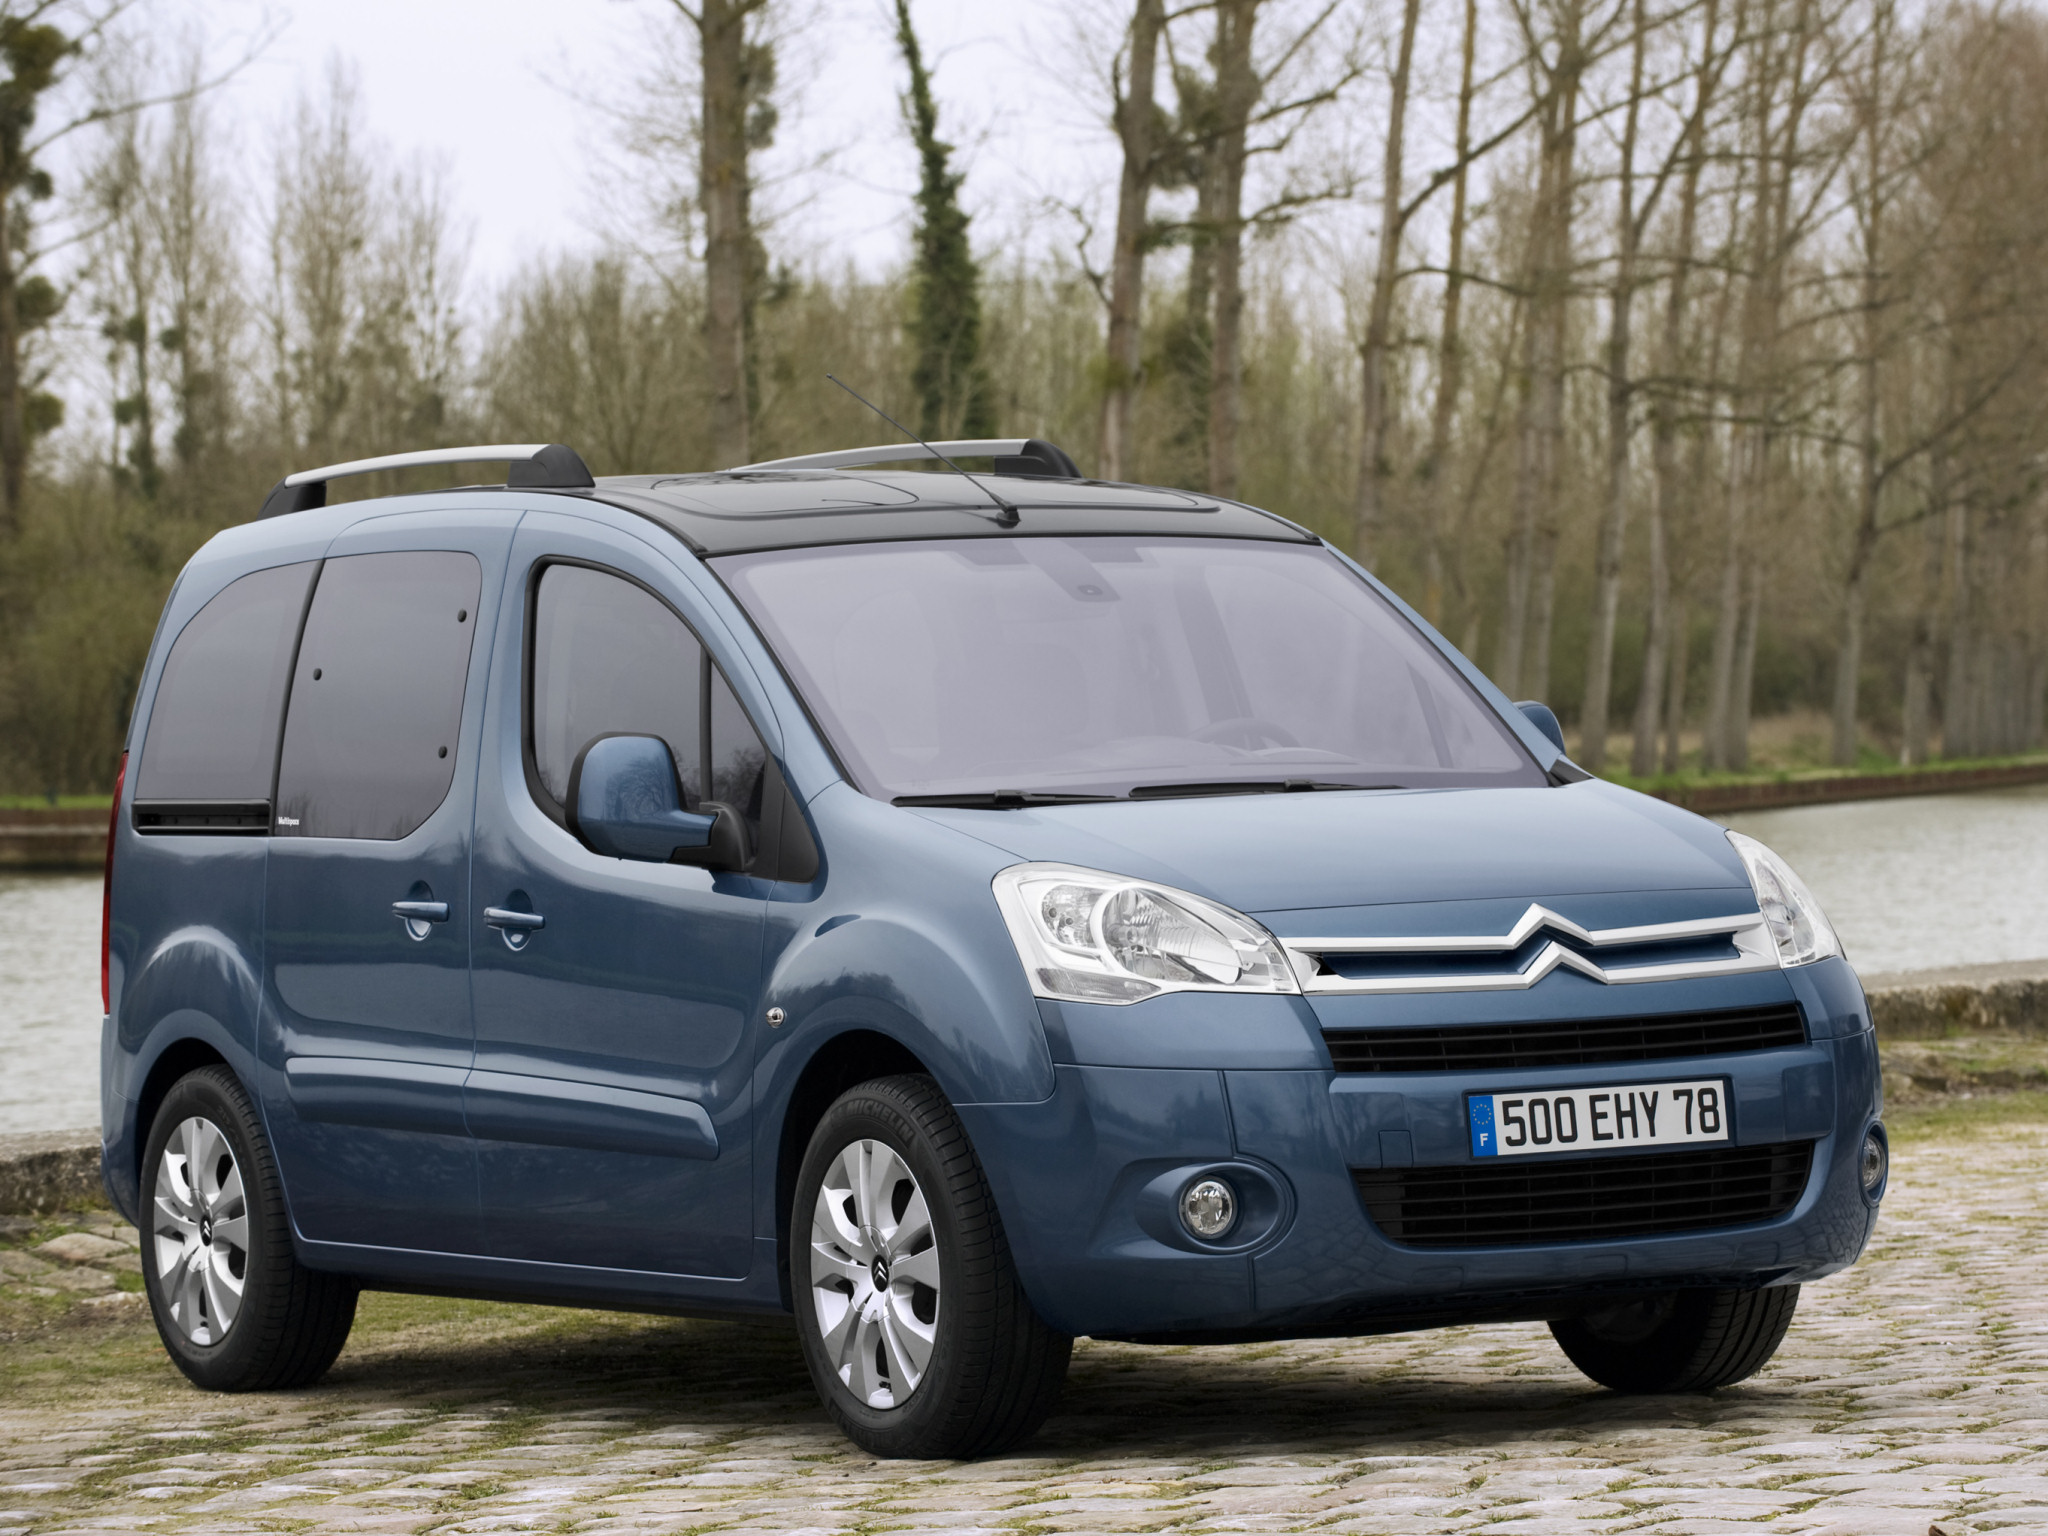 citroen berlingo 2008 citroen berlingo 2008 photo 06 car in pictures car photo gallery. Black Bedroom Furniture Sets. Home Design Ideas